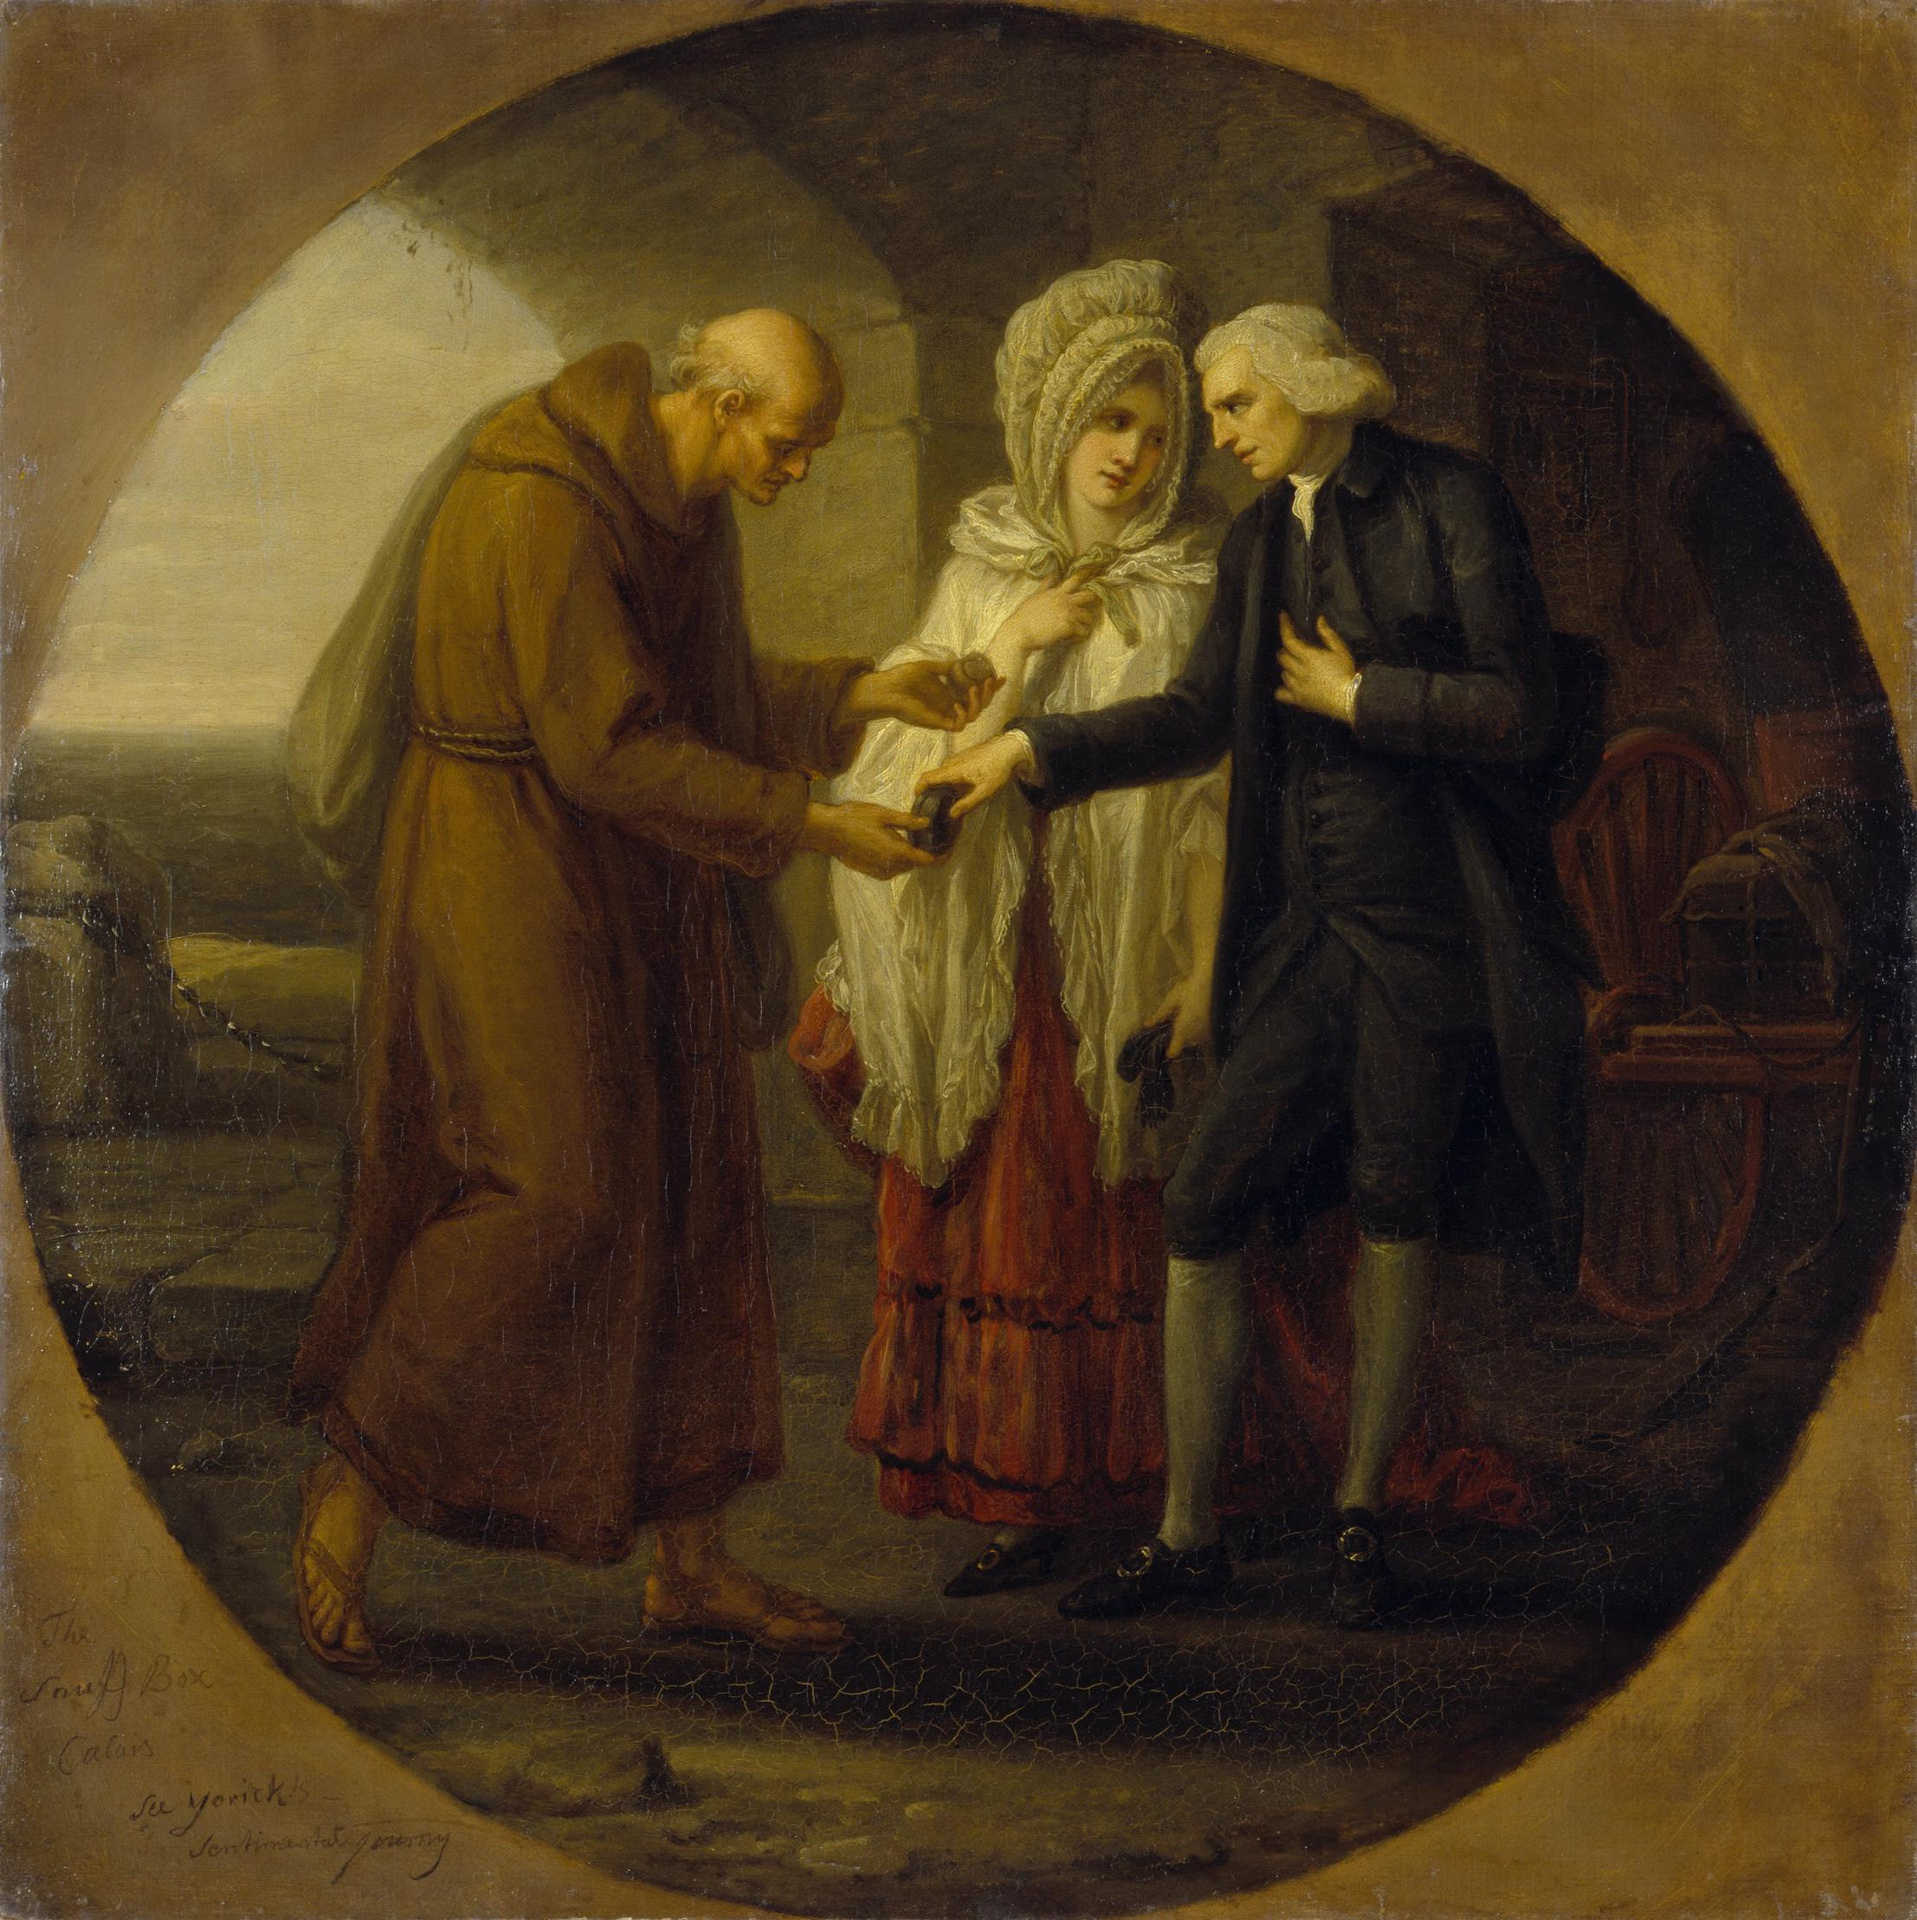 Angelika Kauffmann 1777 apres Monk from Calais Ermitage Saint Petersbourg